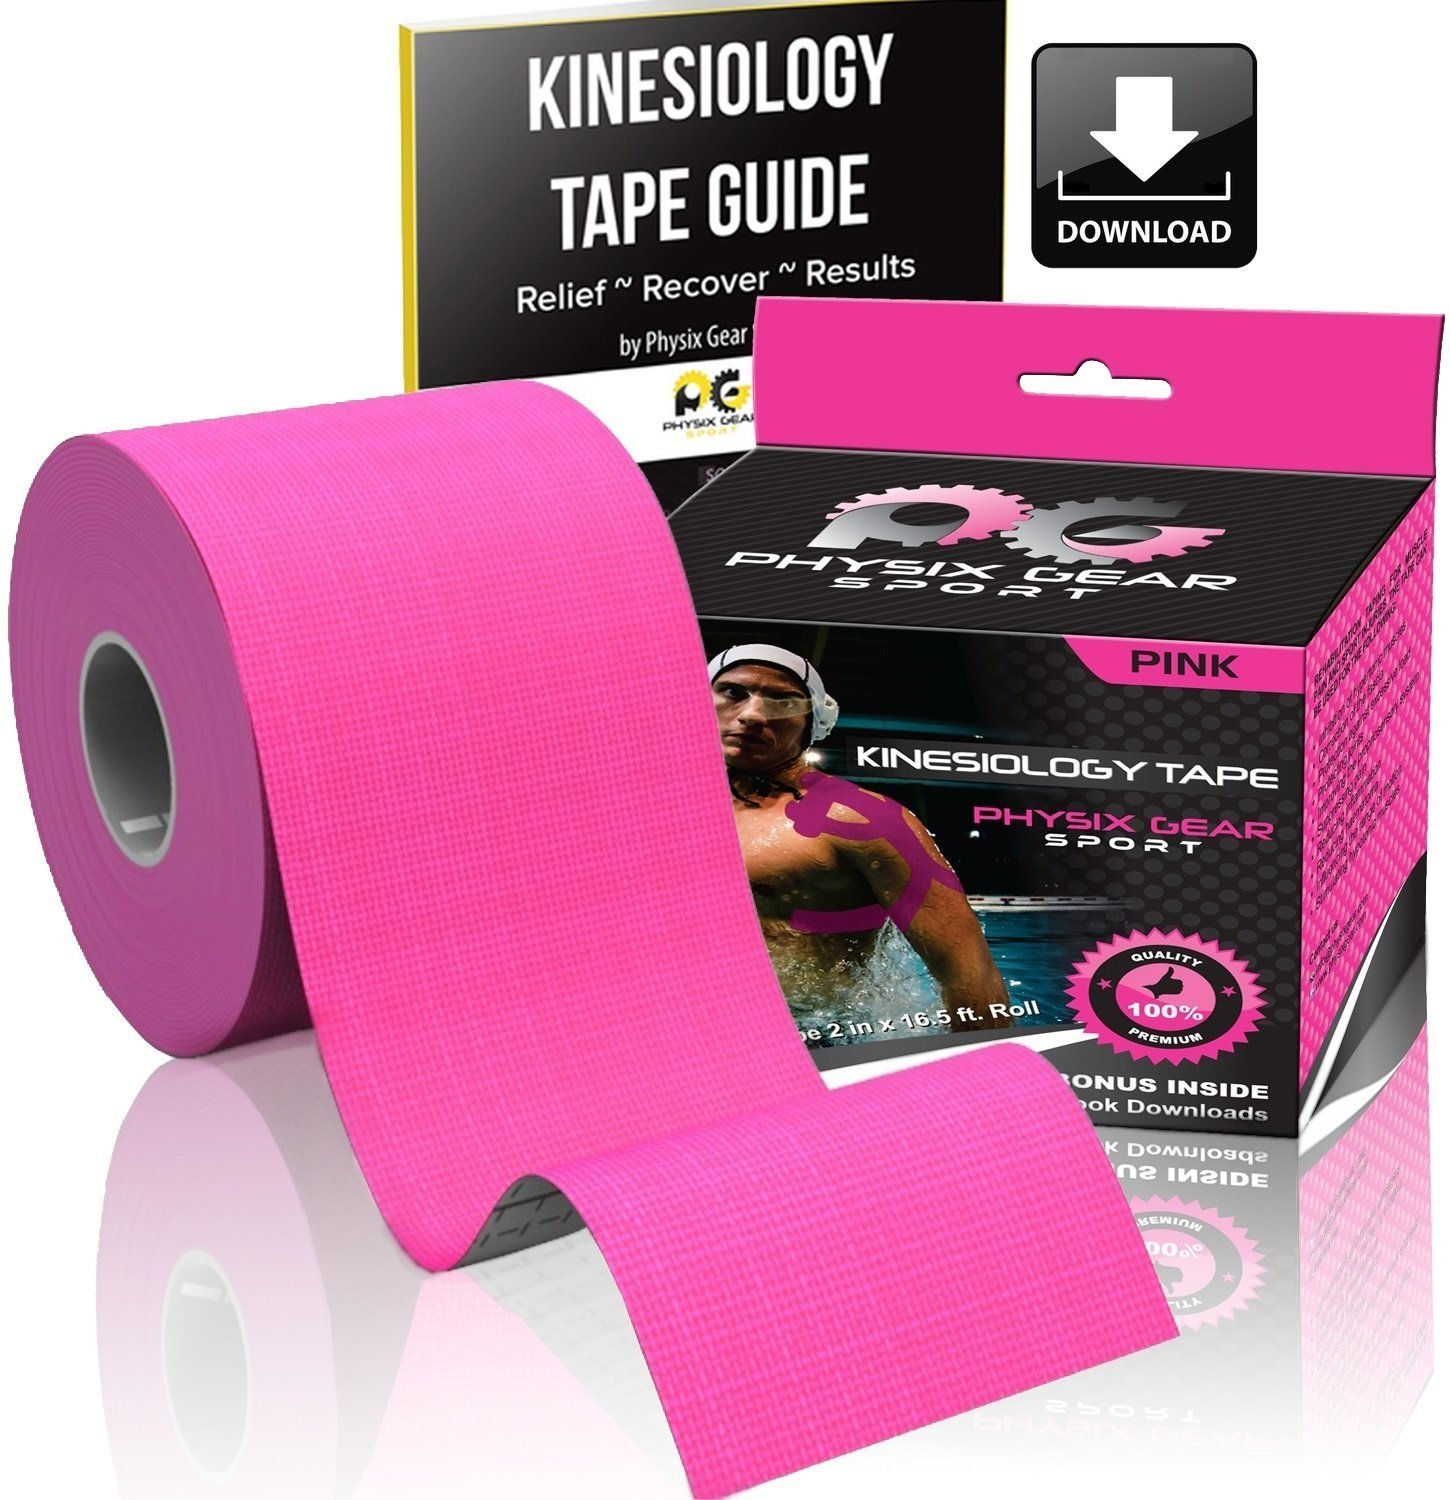 Physix Gear Sport Kinesiology Tape - Free Illustrated E-Guide - 16ft Uncut Roll - Best Pain Relief Adhesive for Muscles, Shin Splints Knee & Shoulder - 24/7 Waterproof Therapeutic Aid (1PK PNK) by Physix Gear Sport (Image #2)